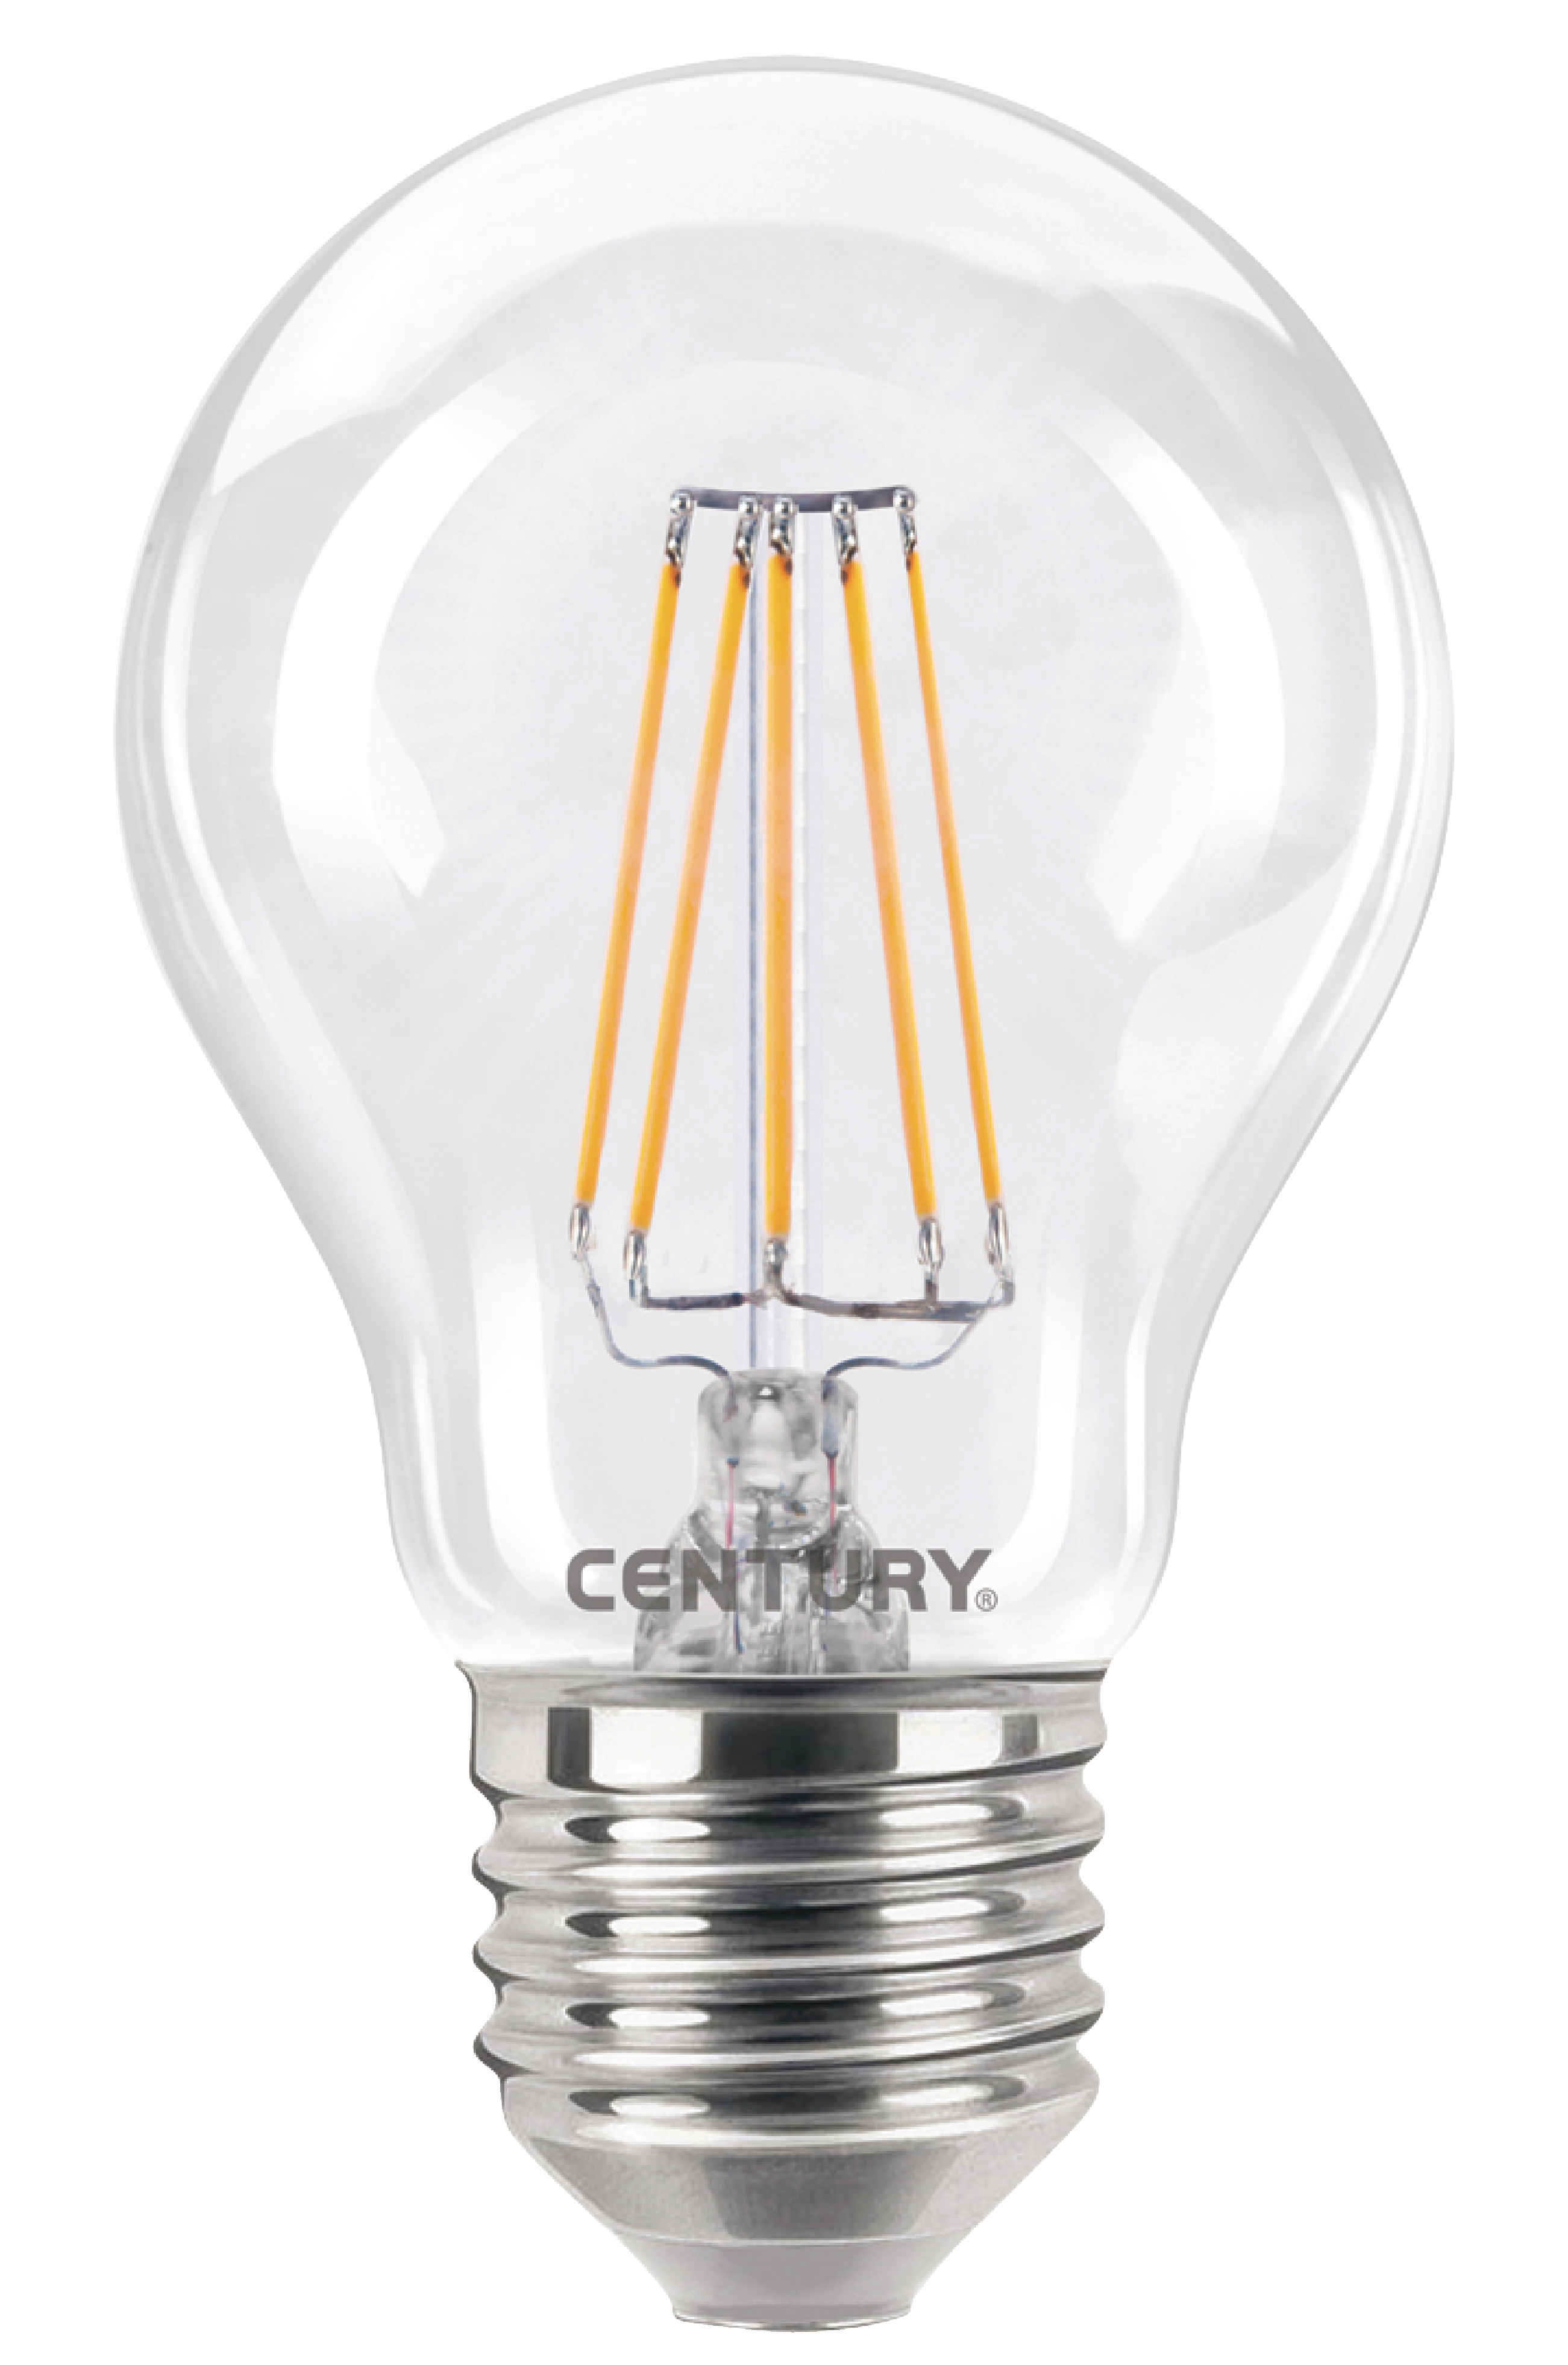 ing3 062727 century led retro filament lamp e27 globe 6 w 810 lm electronic. Black Bedroom Furniture Sets. Home Design Ideas